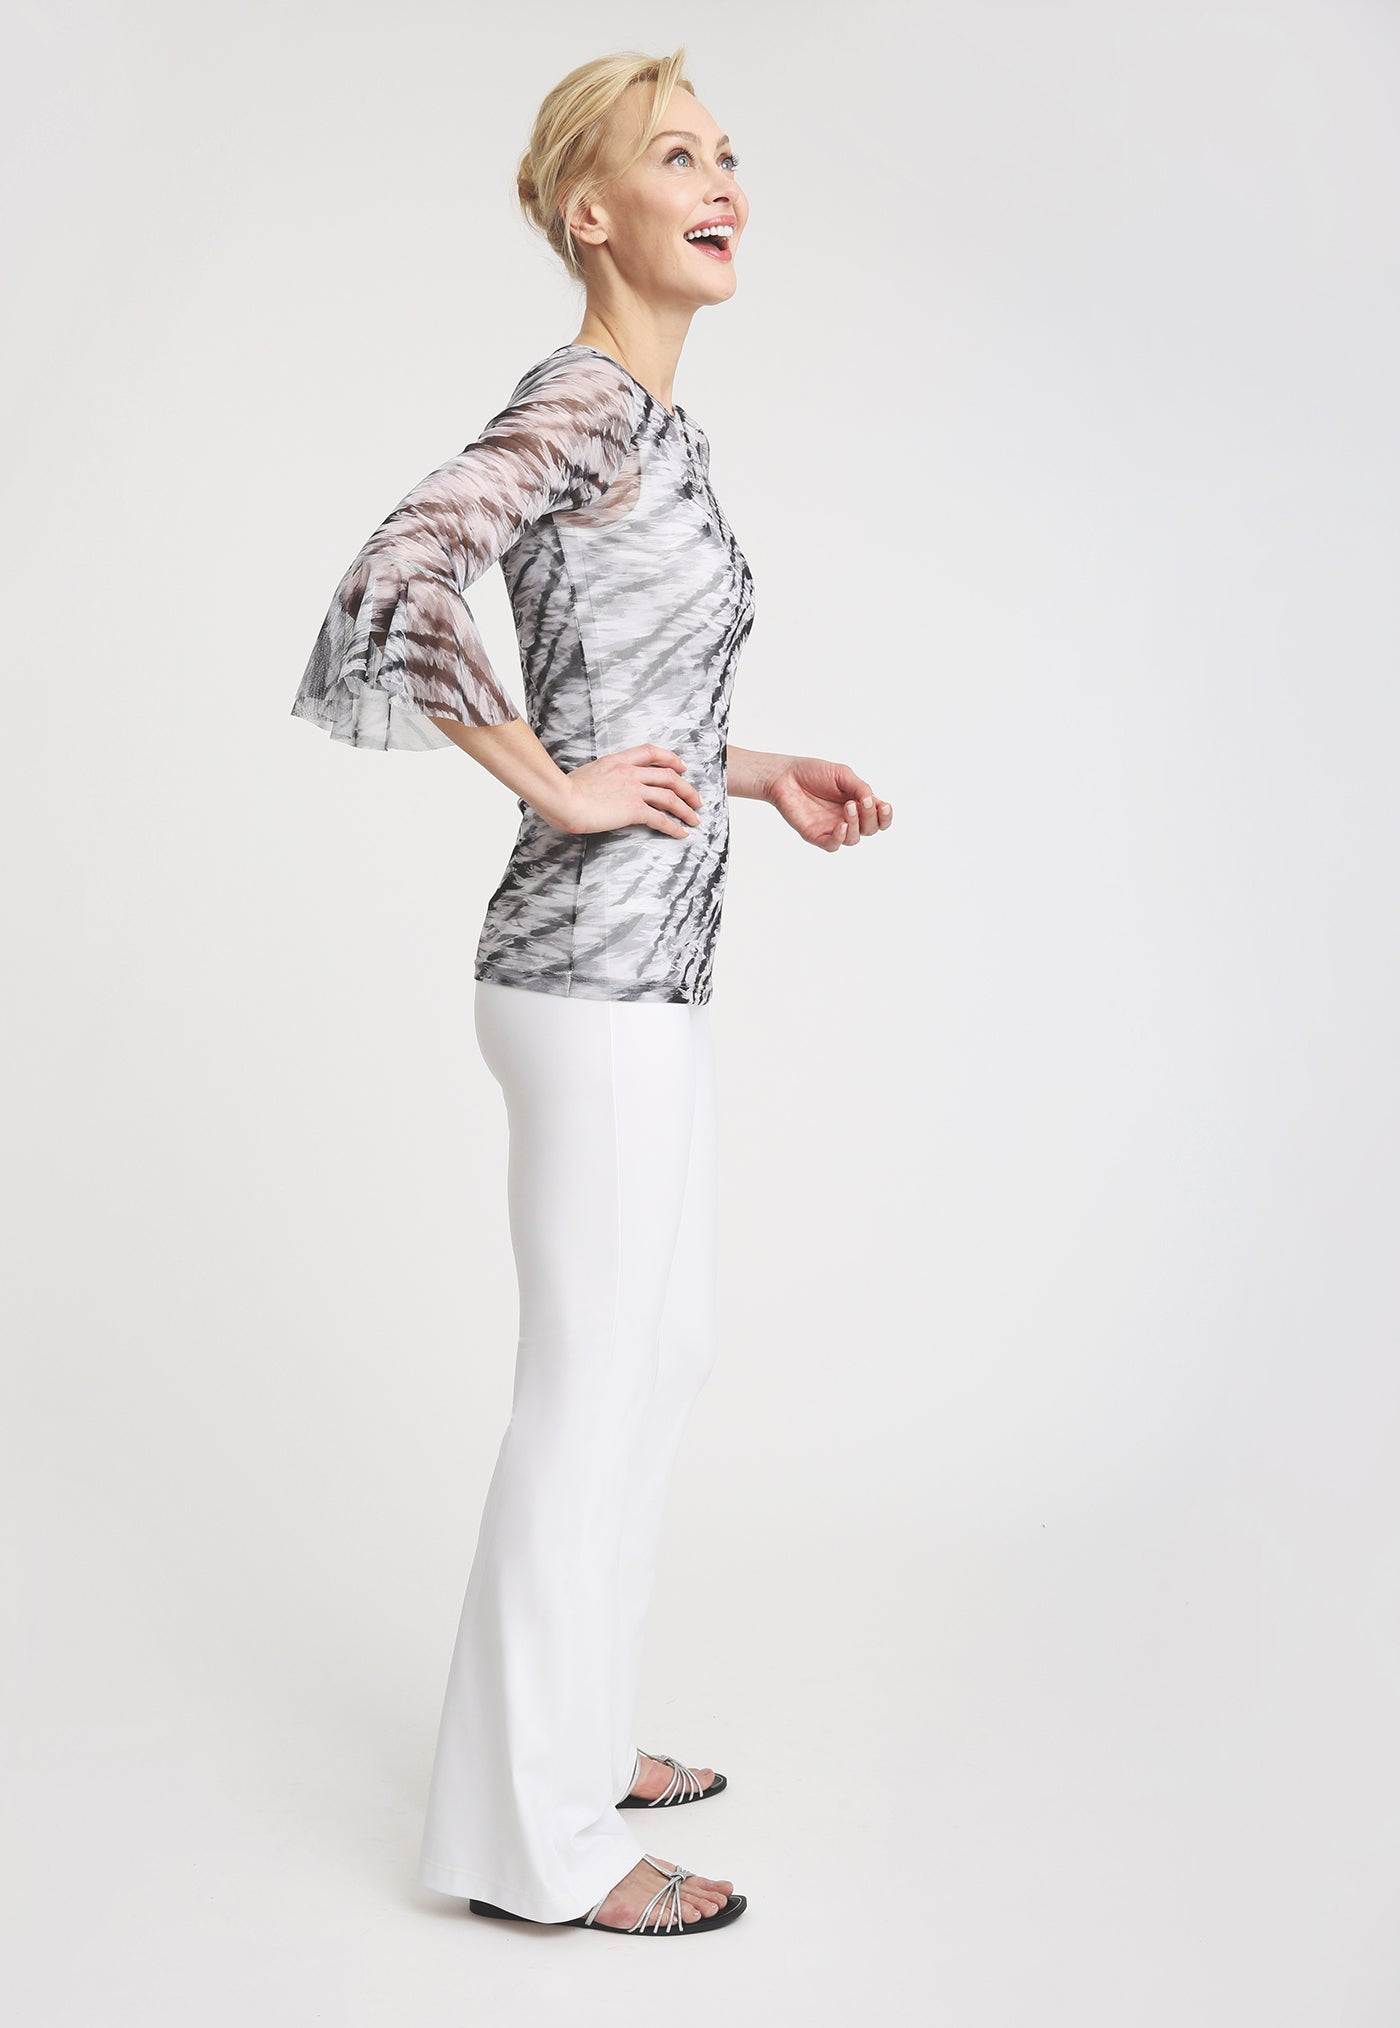 Olivia Mesh Shirt in Assam side view